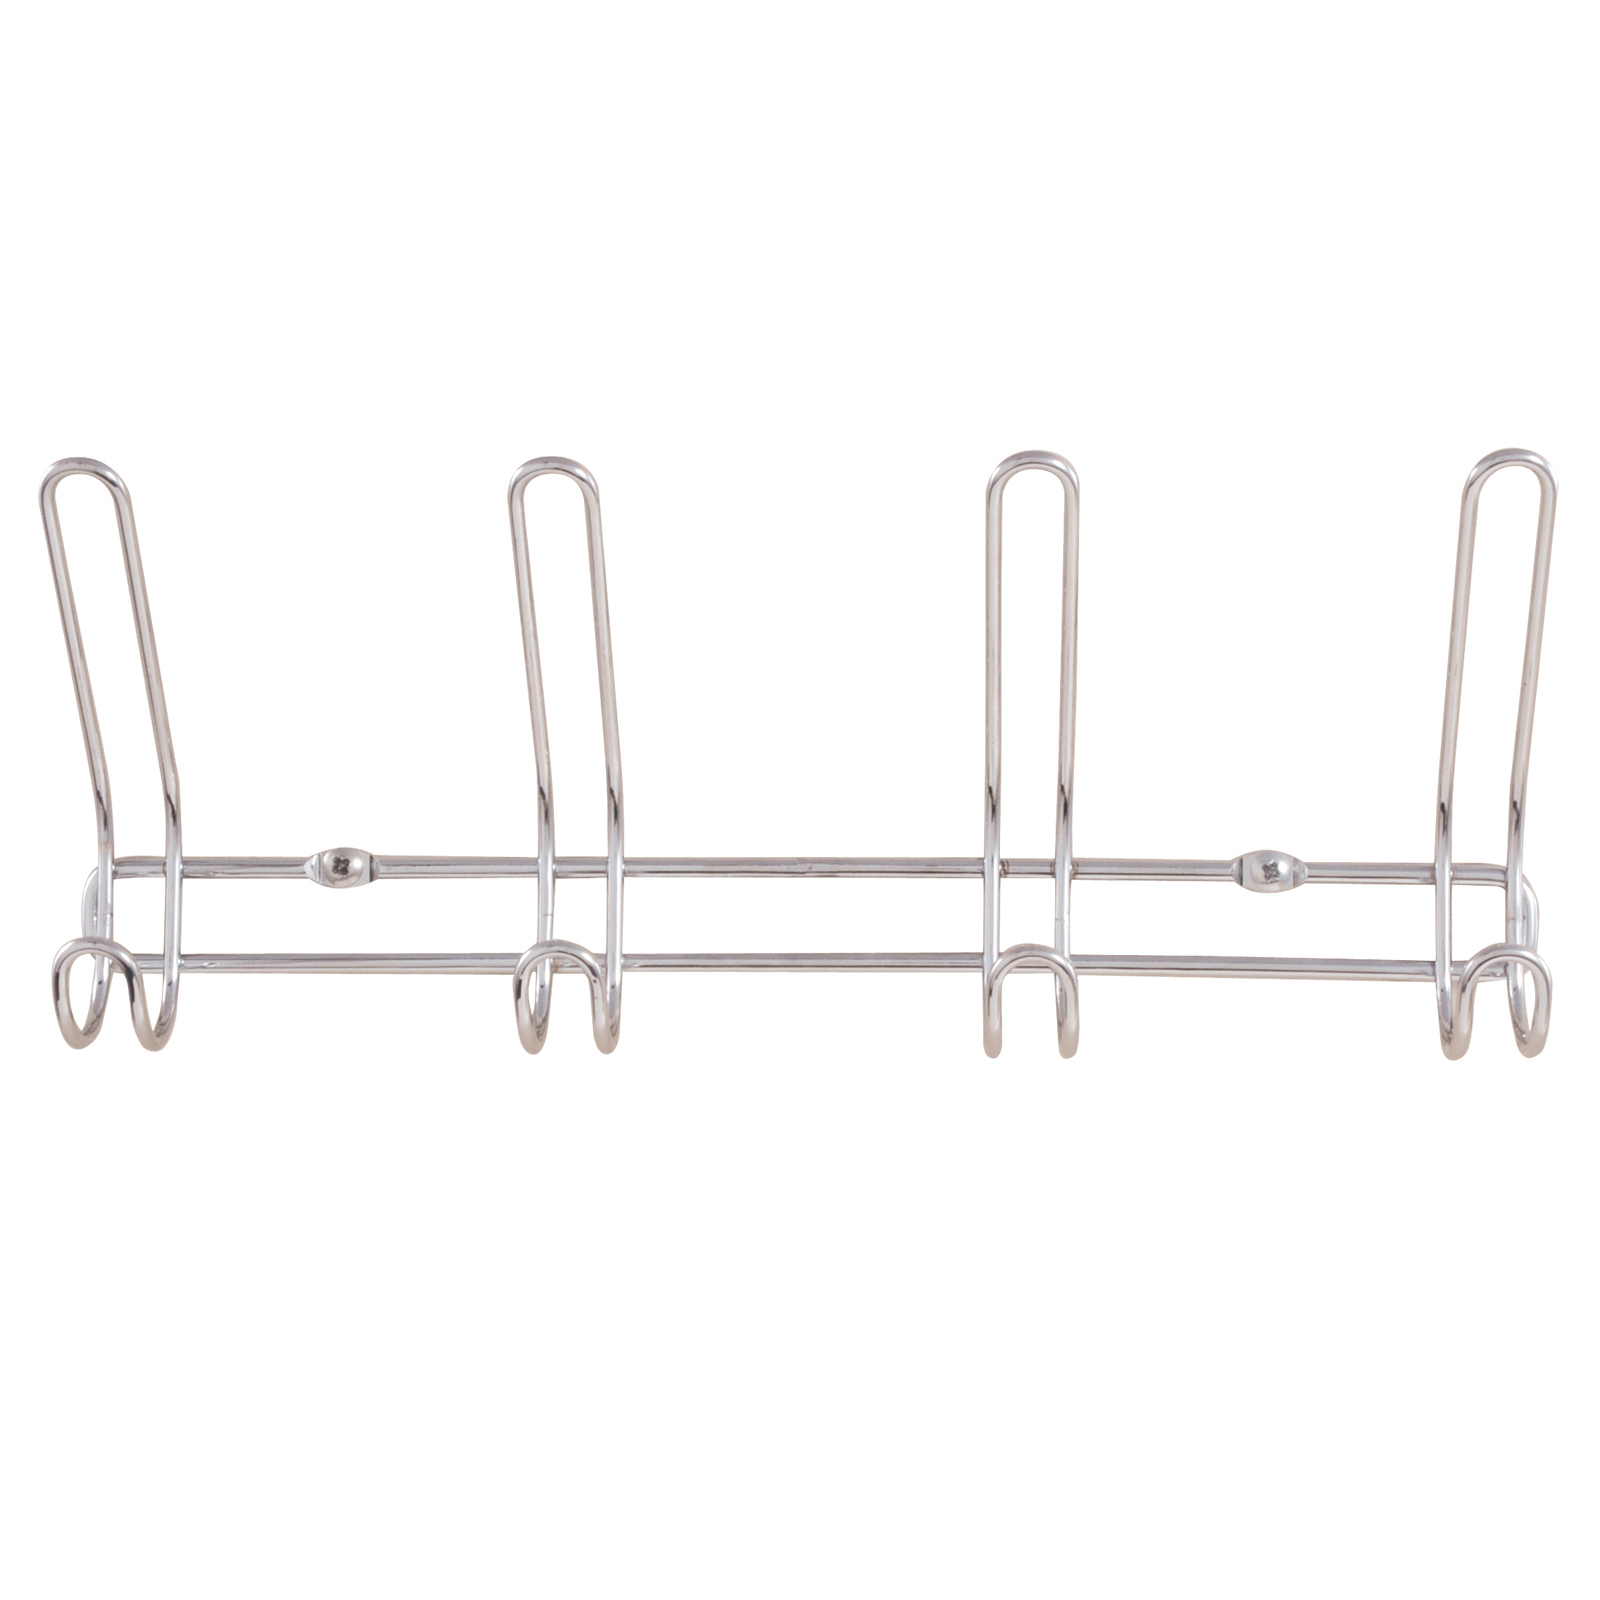 Exquisite 4 Double Wire Hook Organizer Wall Mount Chrome